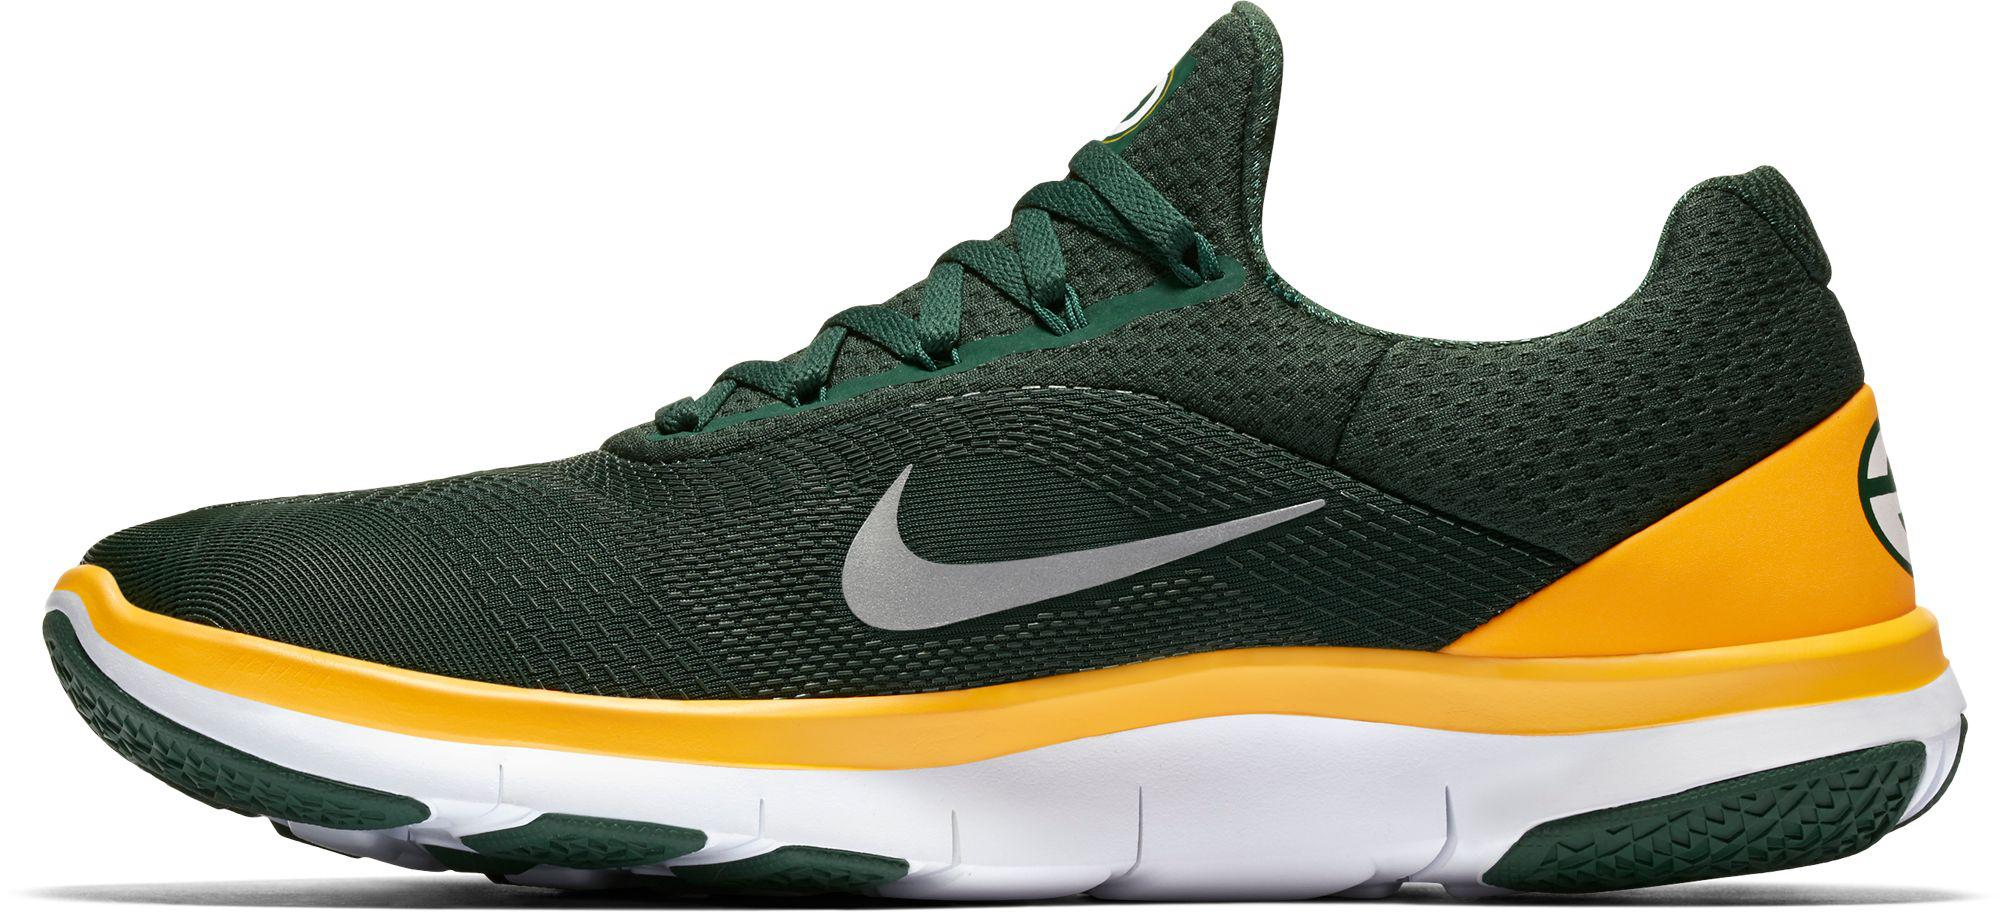 the best attitude 45044 a2368 Nike - Green Free Trainer V7 Nfl Packers Training Shoes for Men - Lyst